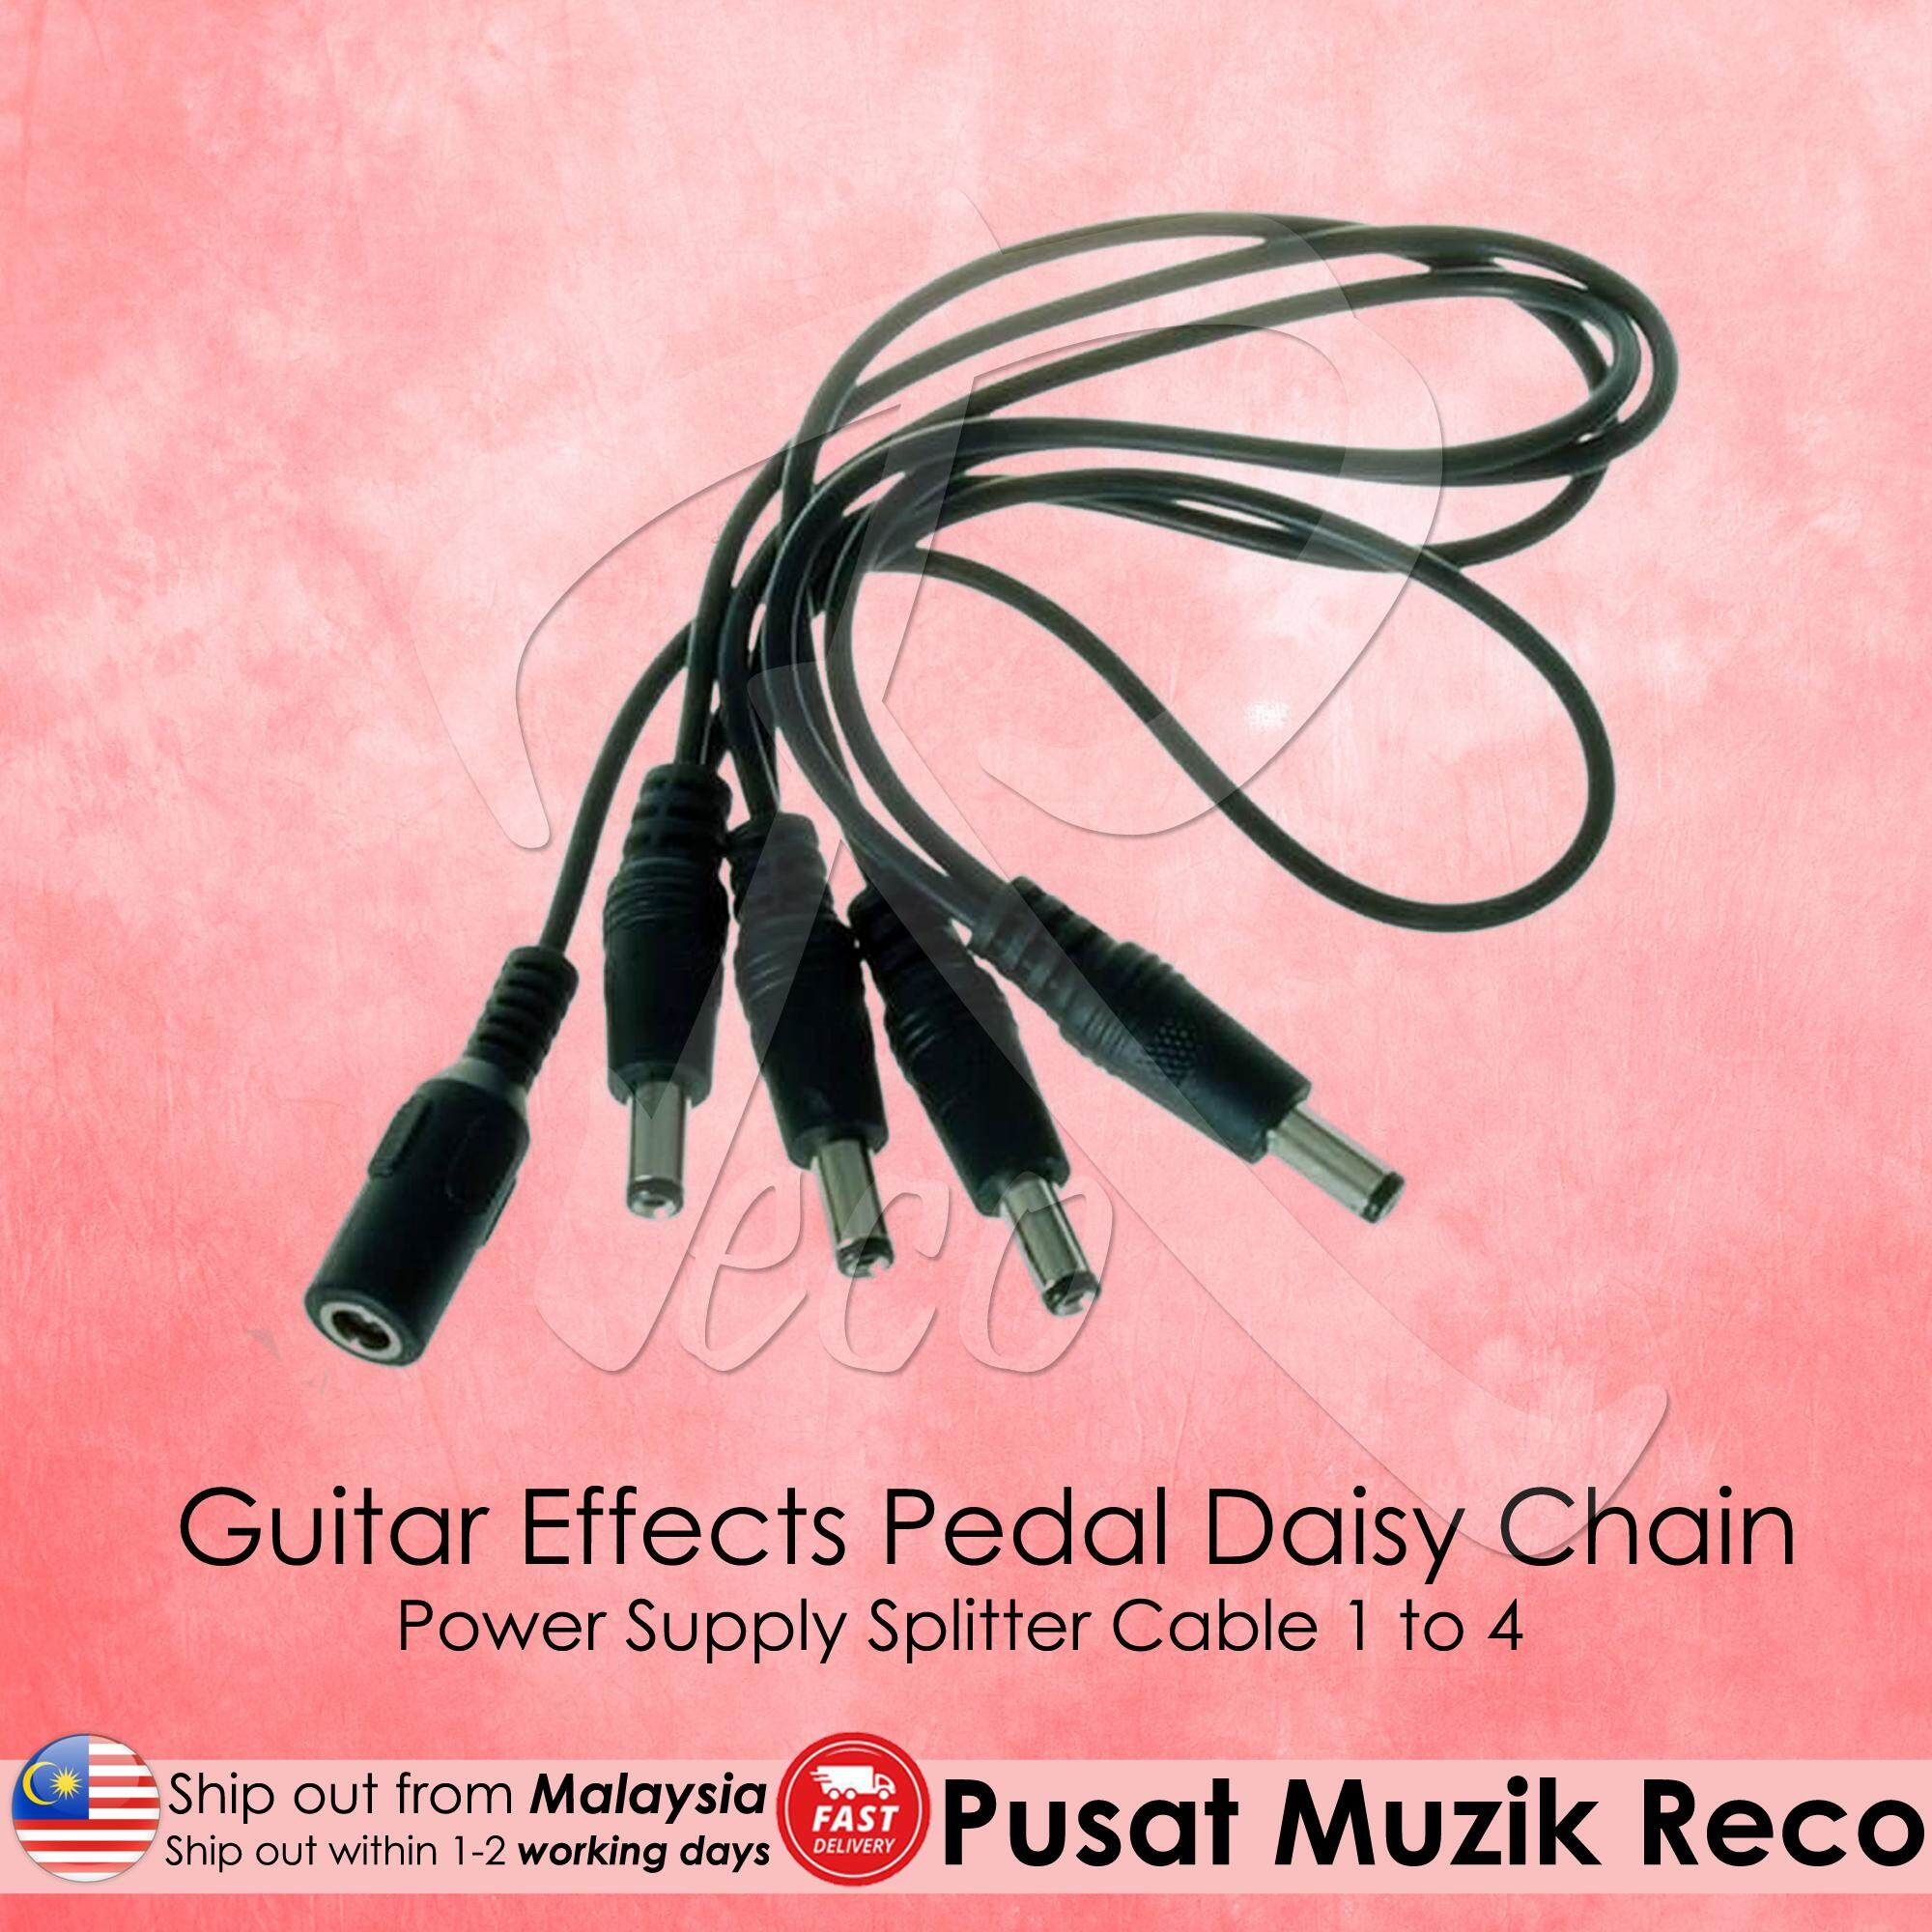 Fitur Vitoos 3 Ways Electrode Daisy Chain Harness Cable Copper Wire Guitar Effects Pedal Power Supply Splitter 1 To 4